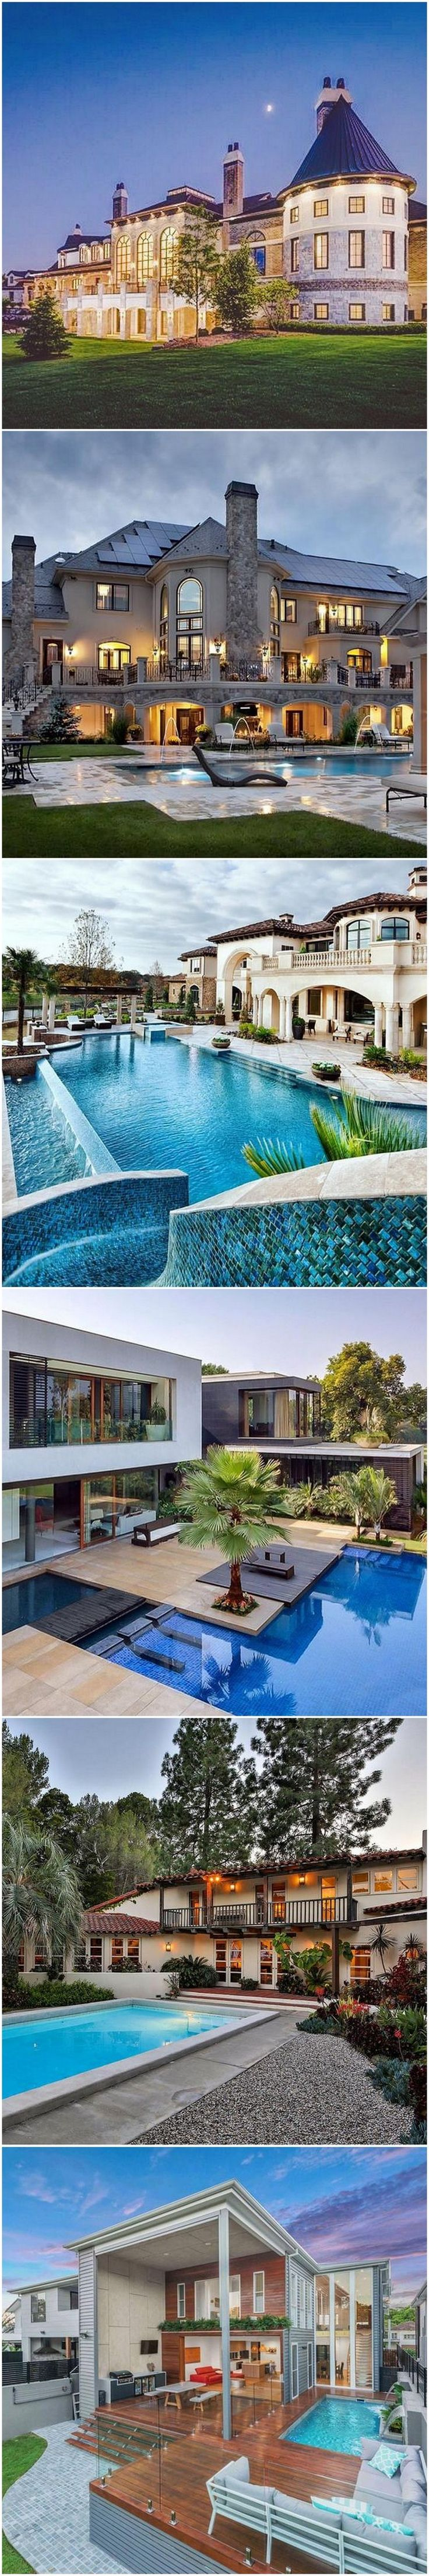 Mansions Archives - Luxury Homes